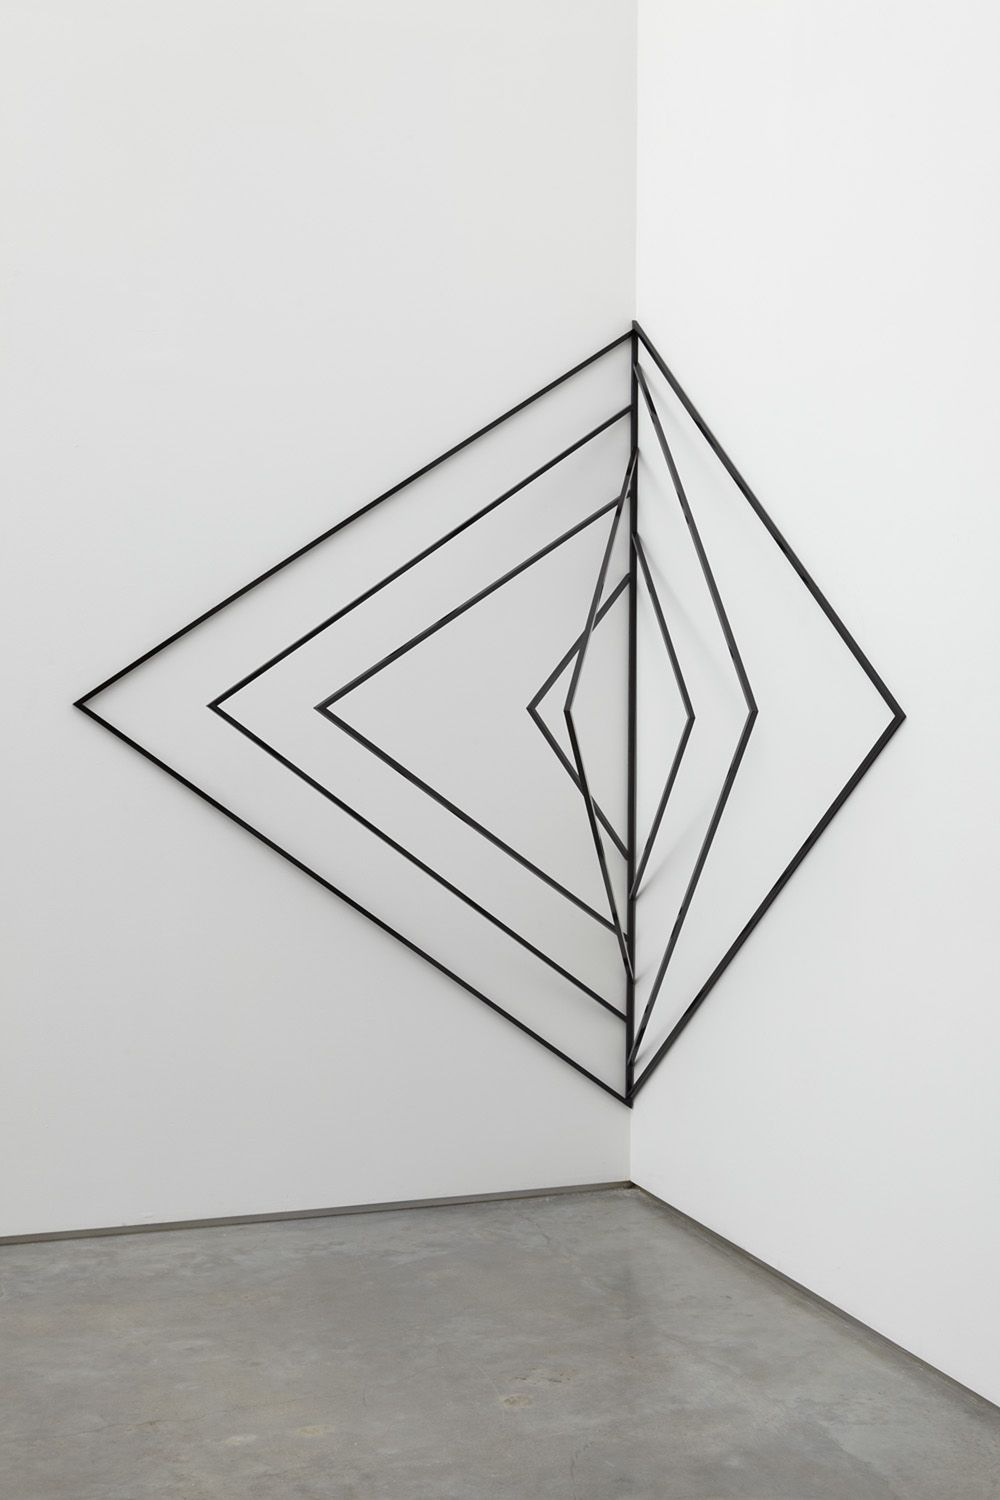 triangular sculpture by eva rothschild